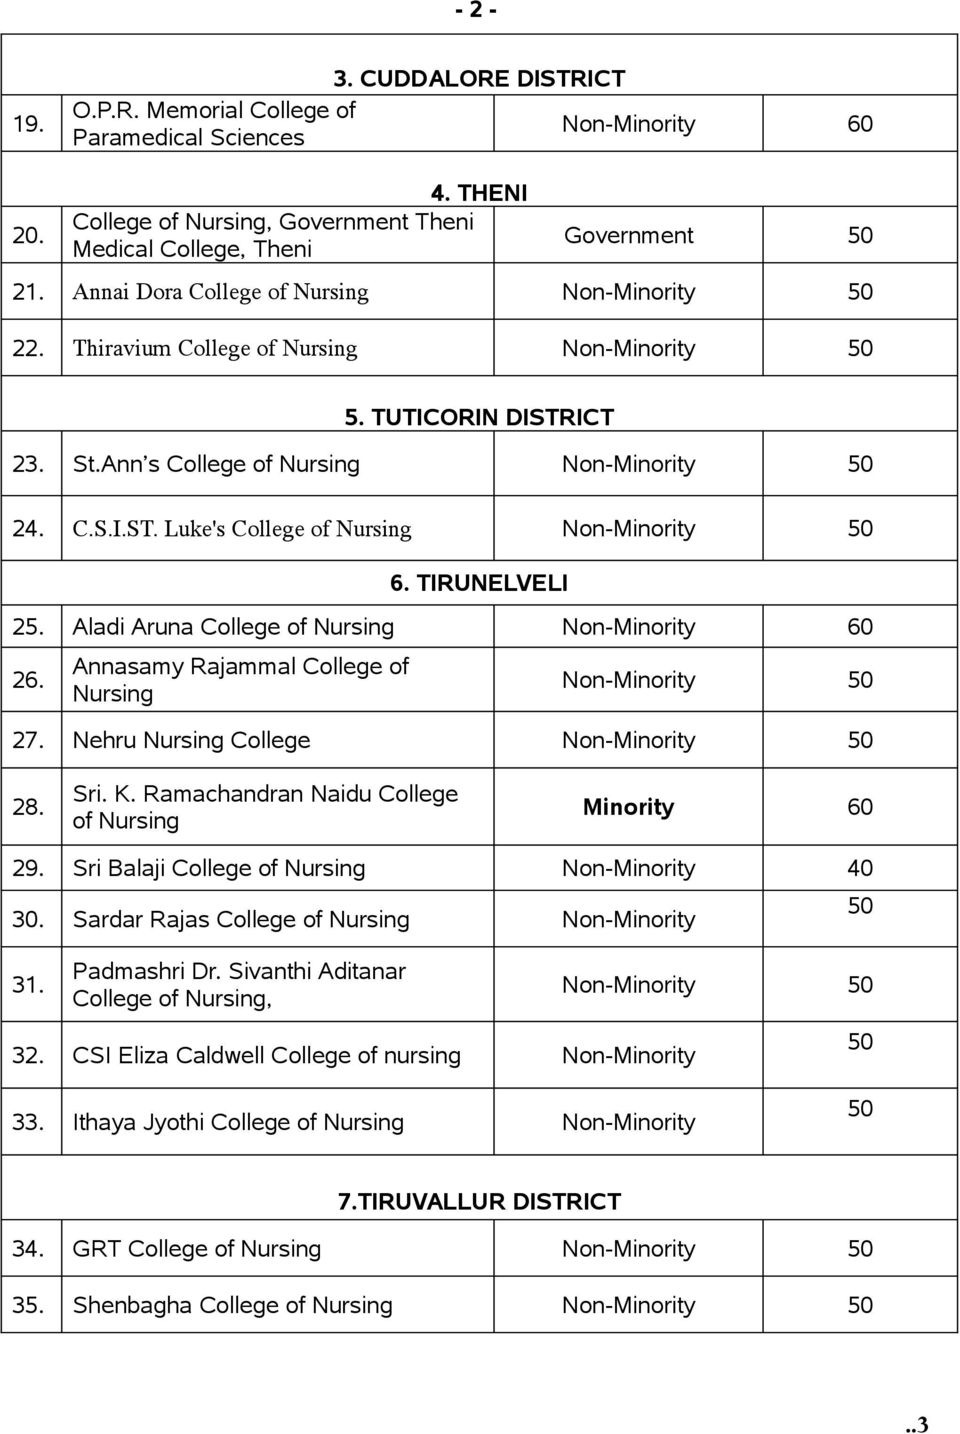 Aladi Aruna College of Nursing 60 26. Annasamy Rajammal College of Nursing 27. Nehru Nursing College 28. Sri. K. Ramachandran Naidu College of Nursing Minority 60 29. Sri Balaji College of Nursing 30.